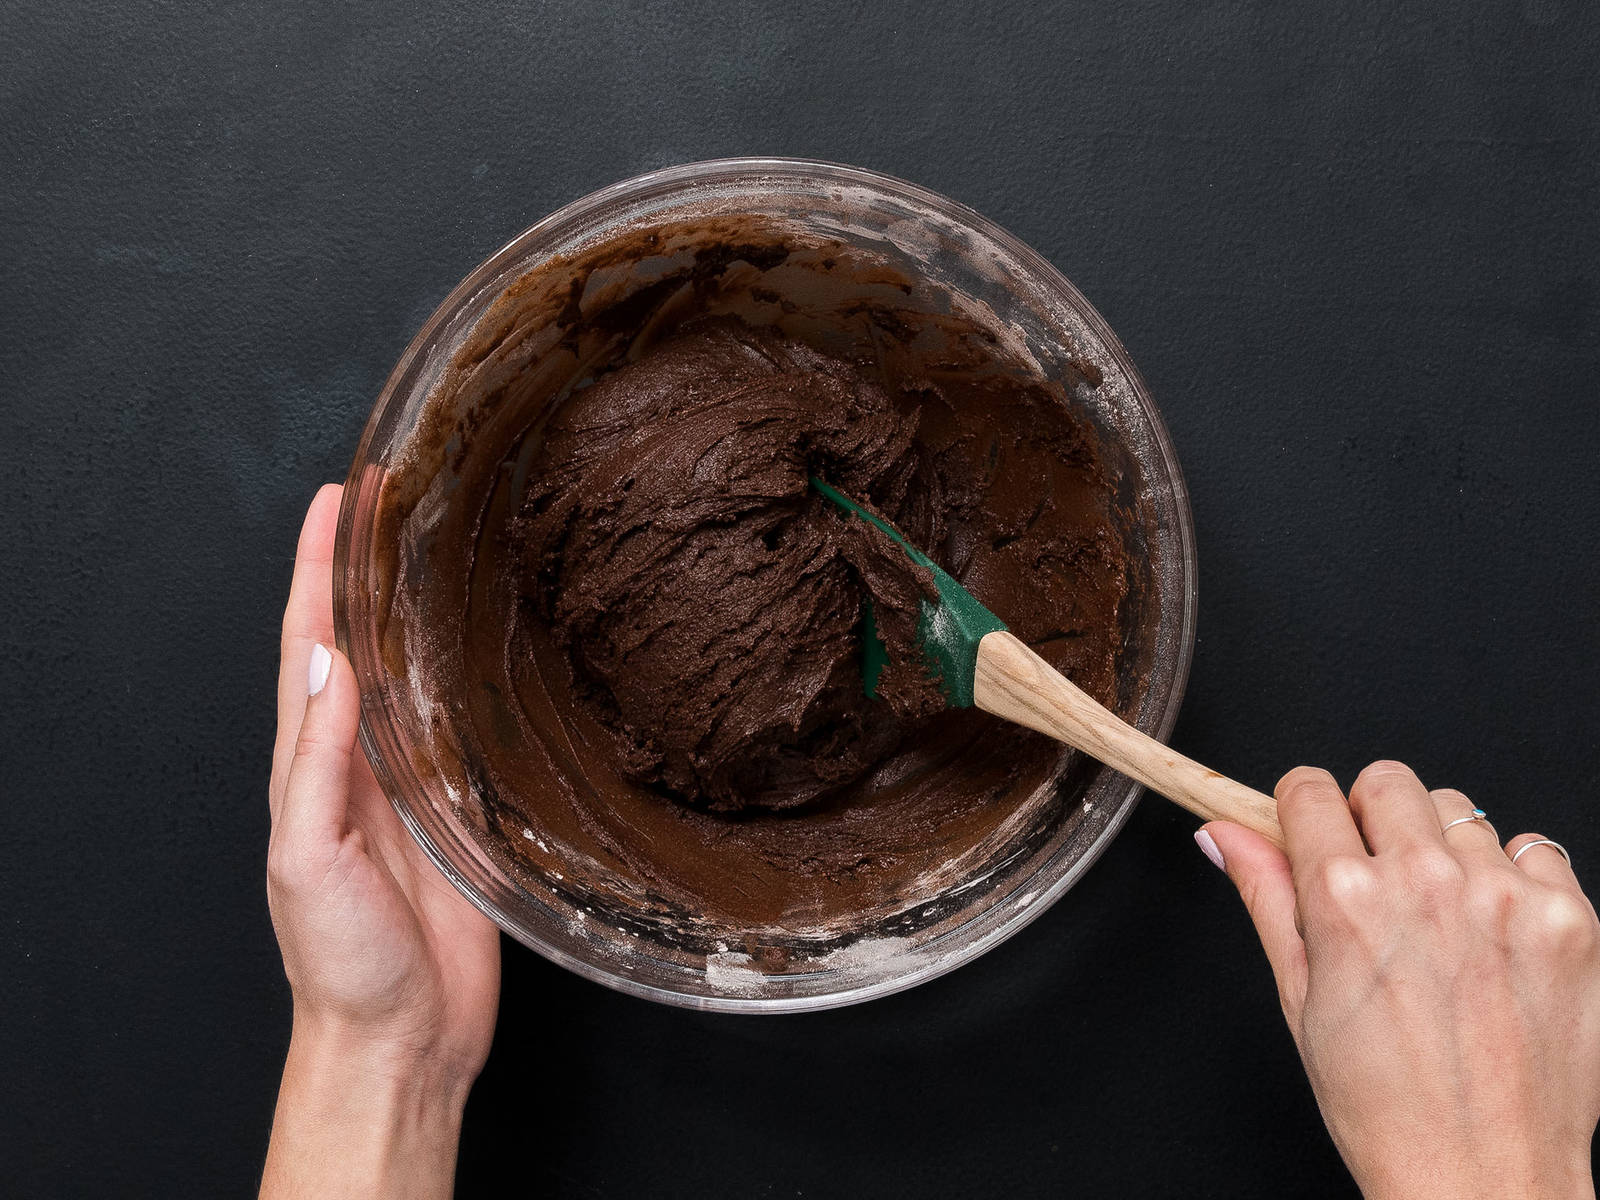 Add the chocolate-butter mixture and stir to combine. Gradually add the dry ingredients and mix until a tough dough forms.